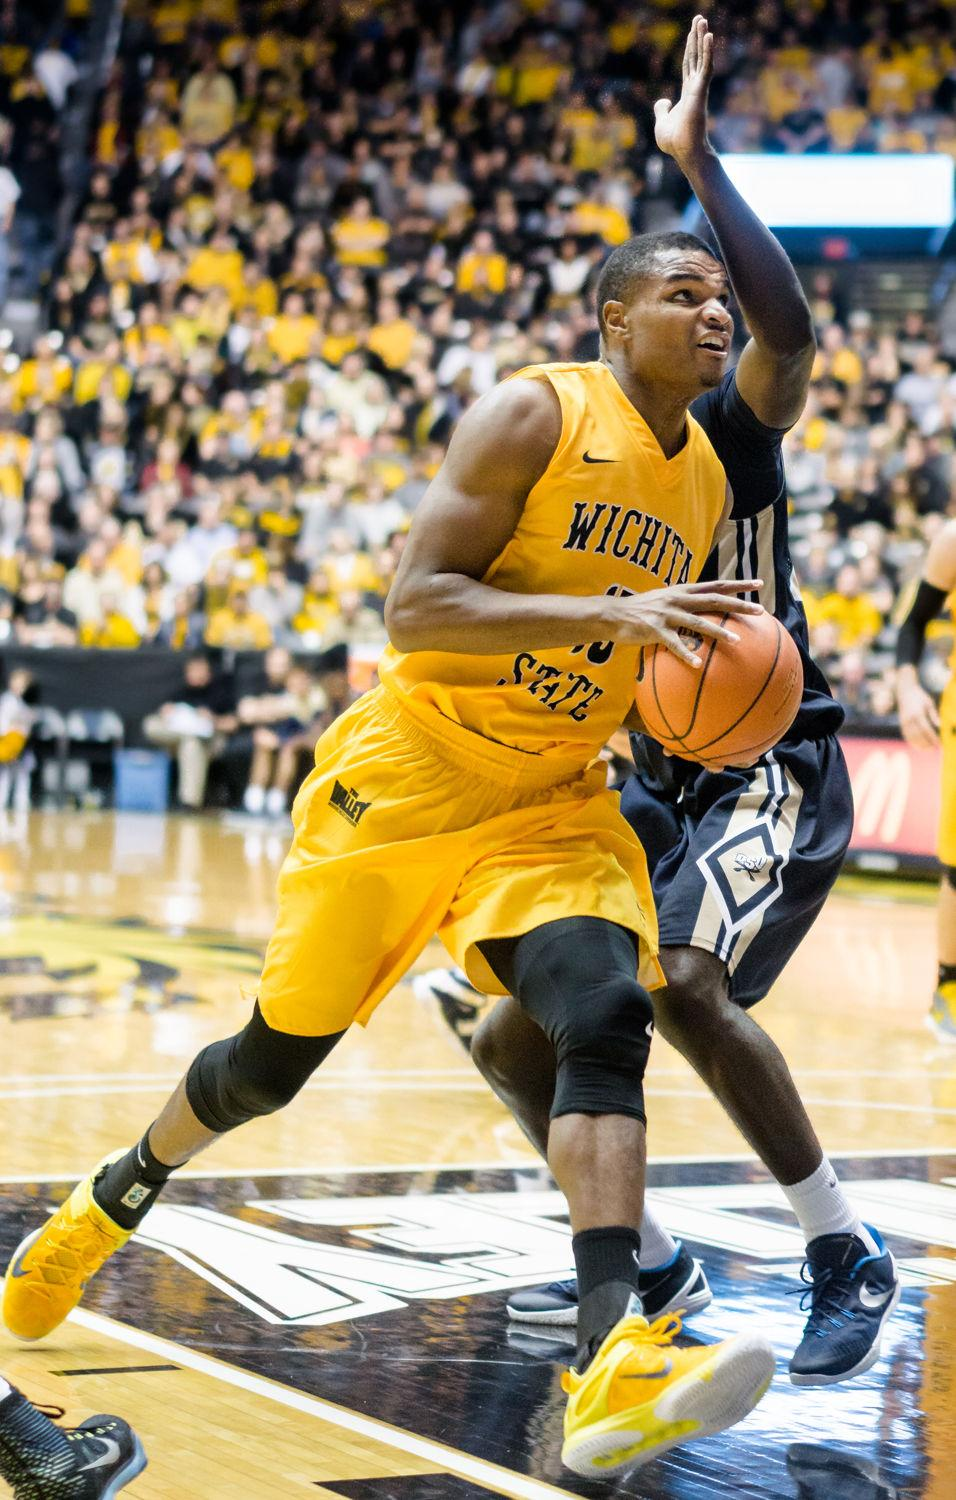 Freshman Anton Grady drives to the paint Nov. 13 against Charleston Southern at Charles Koch Arena as the Shockers defeated the Buccaneers 88-63.